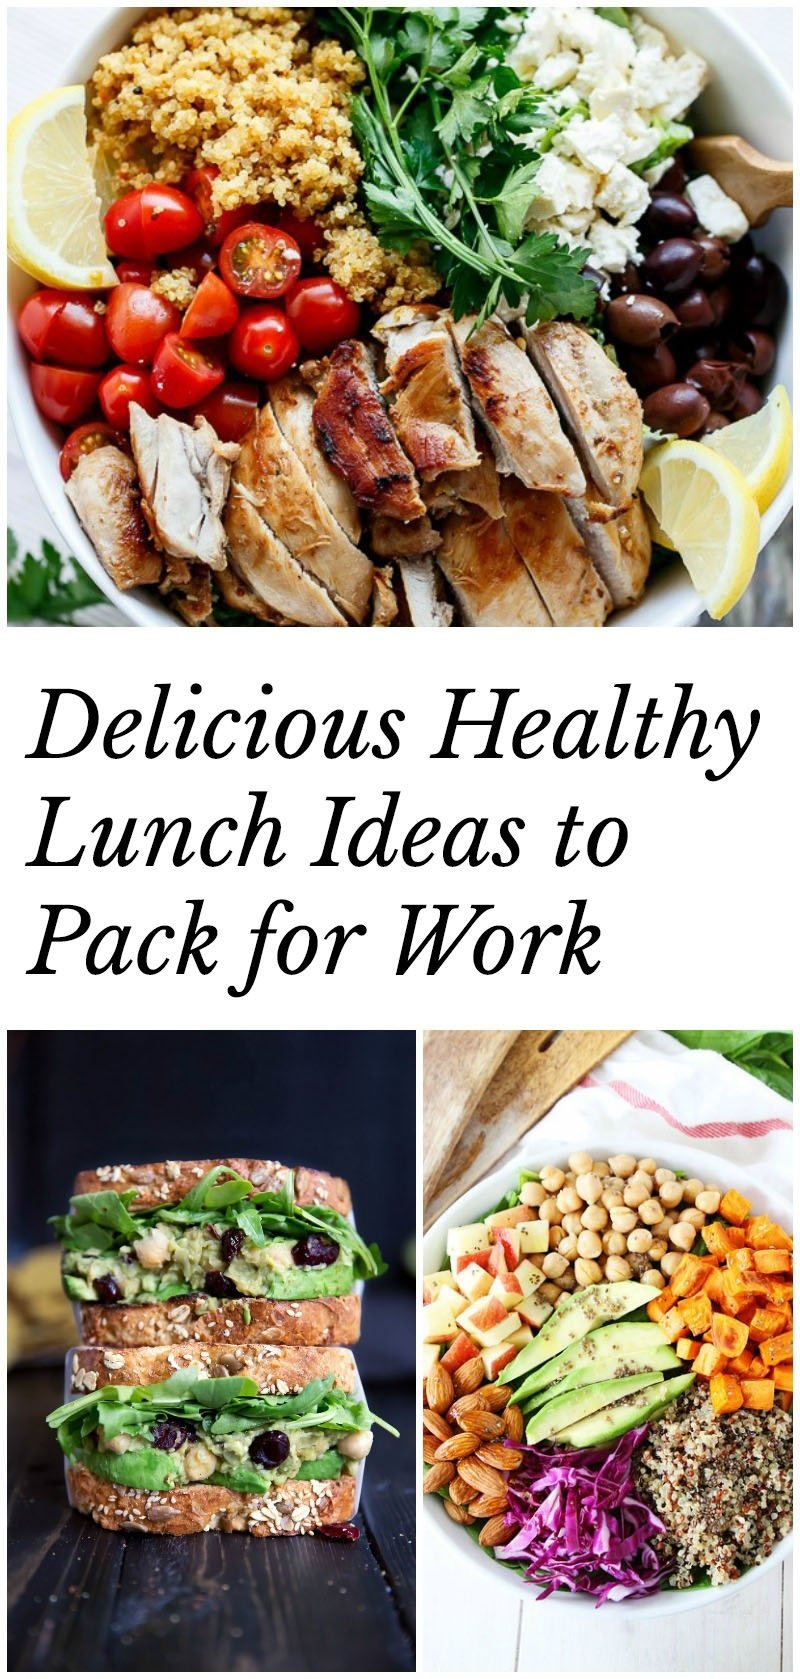 10 Most Recommended Ideas For Lunch At Work healthy lunch ideas to pack for work 40 recipes 19 2020